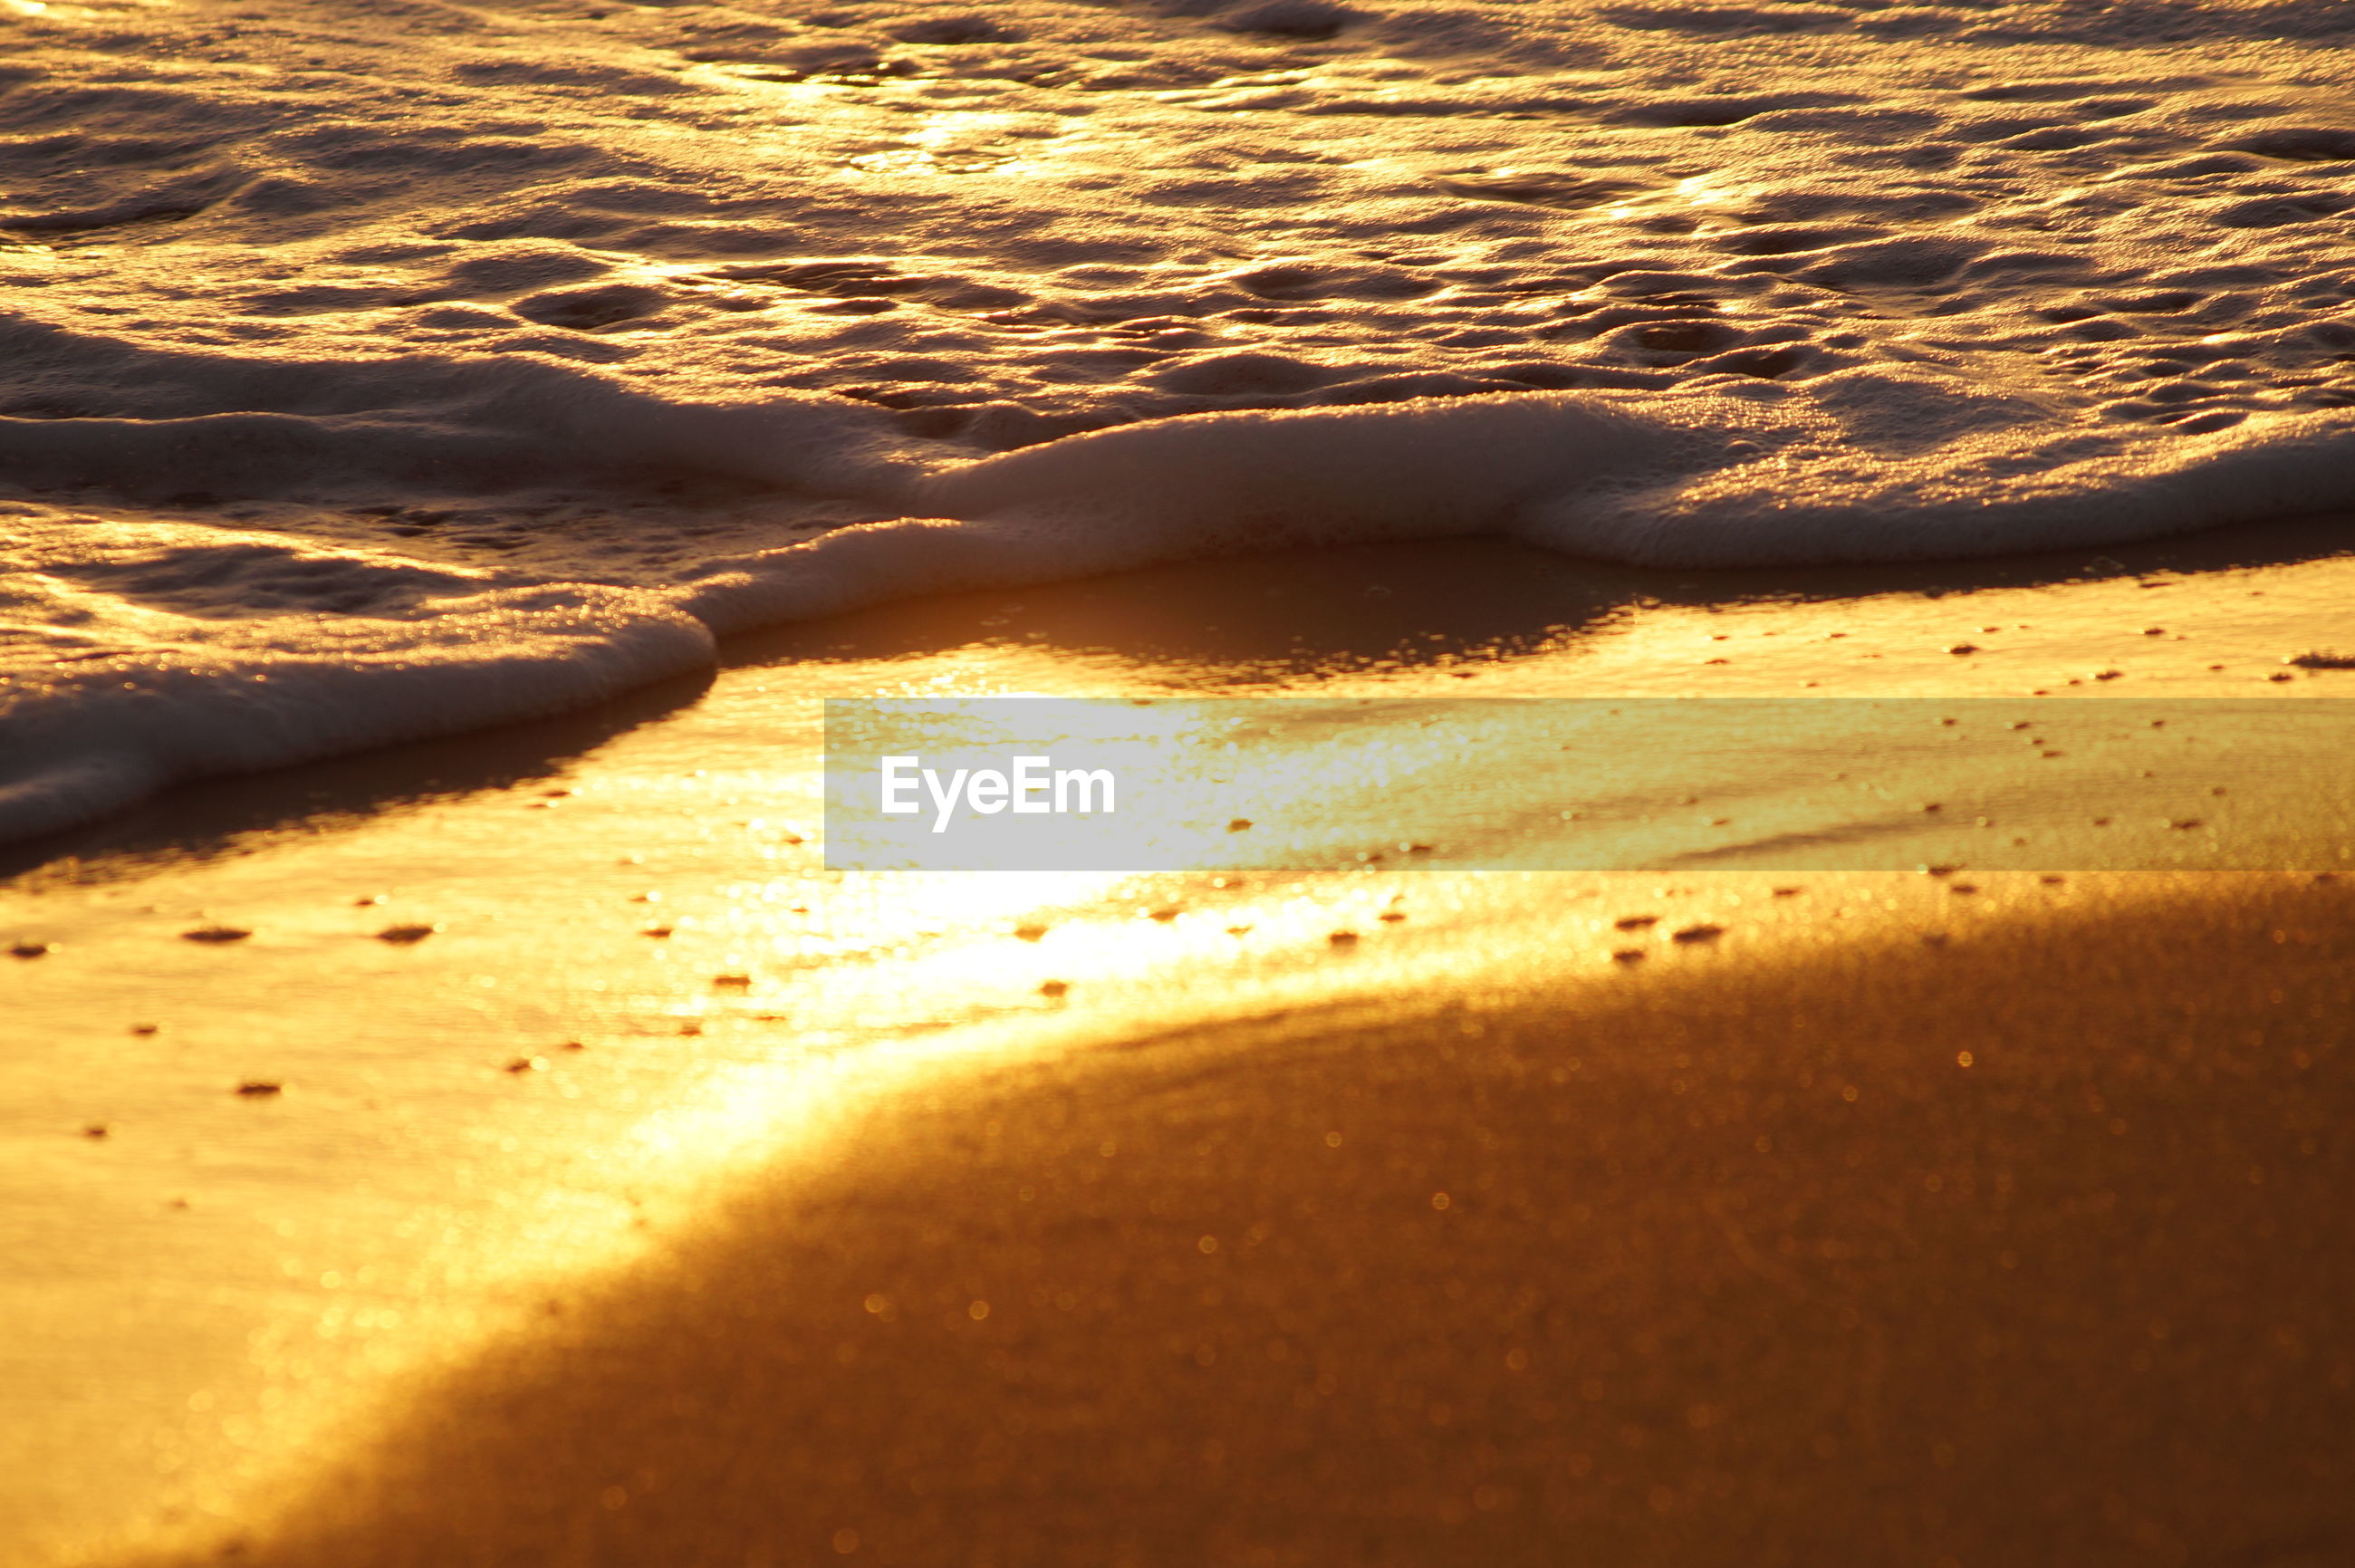 sand, beach, sea, shore, nature, sunlight, beauty in nature, no people, water, wave, sunset, scenics, outdoors, tranquility, day